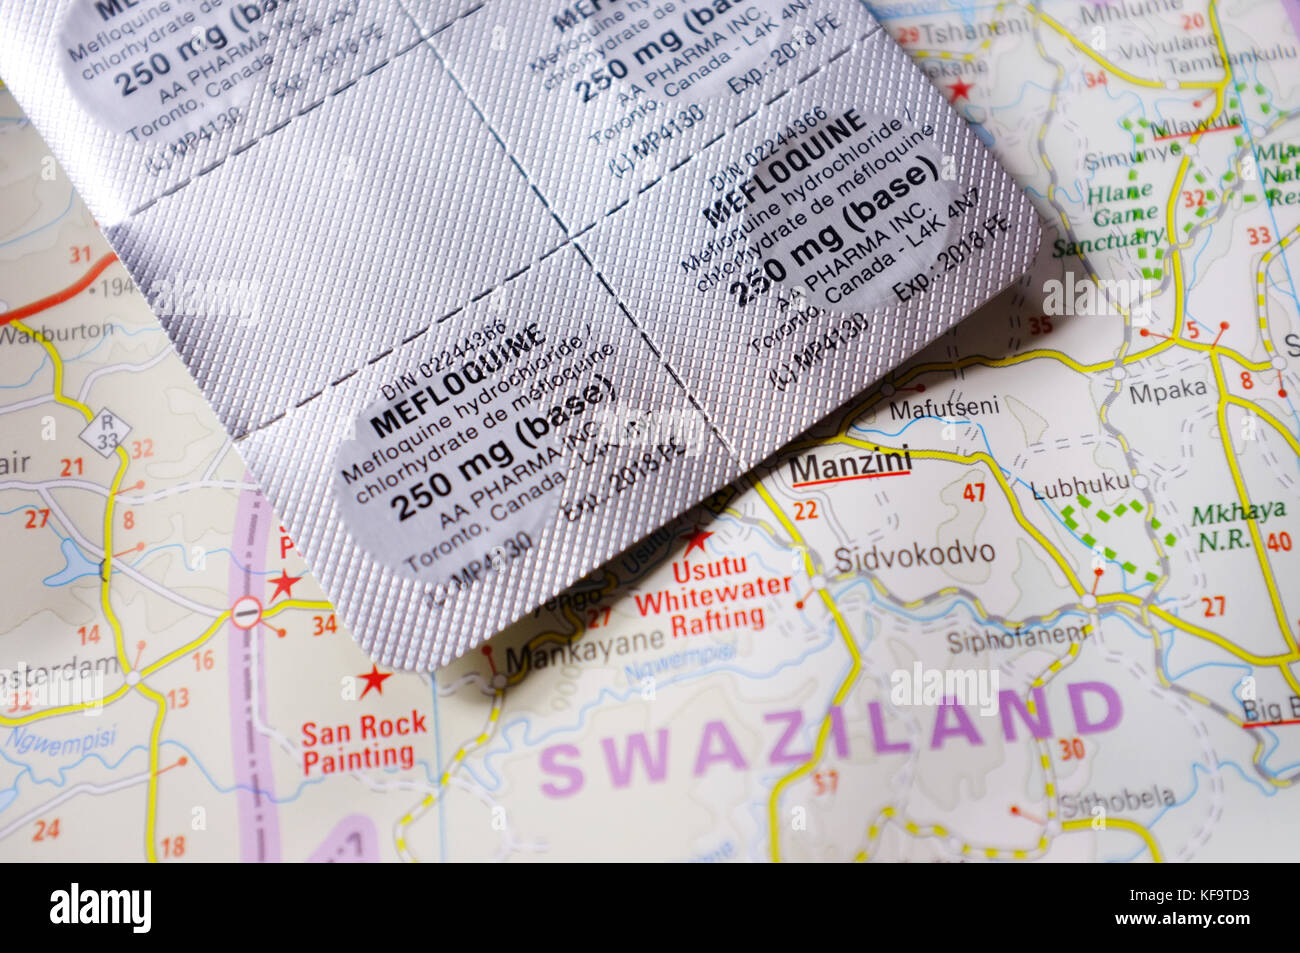 Carte Malaria Afrique Du Sud.Malaria Map Photos Malaria Map Images Alamy